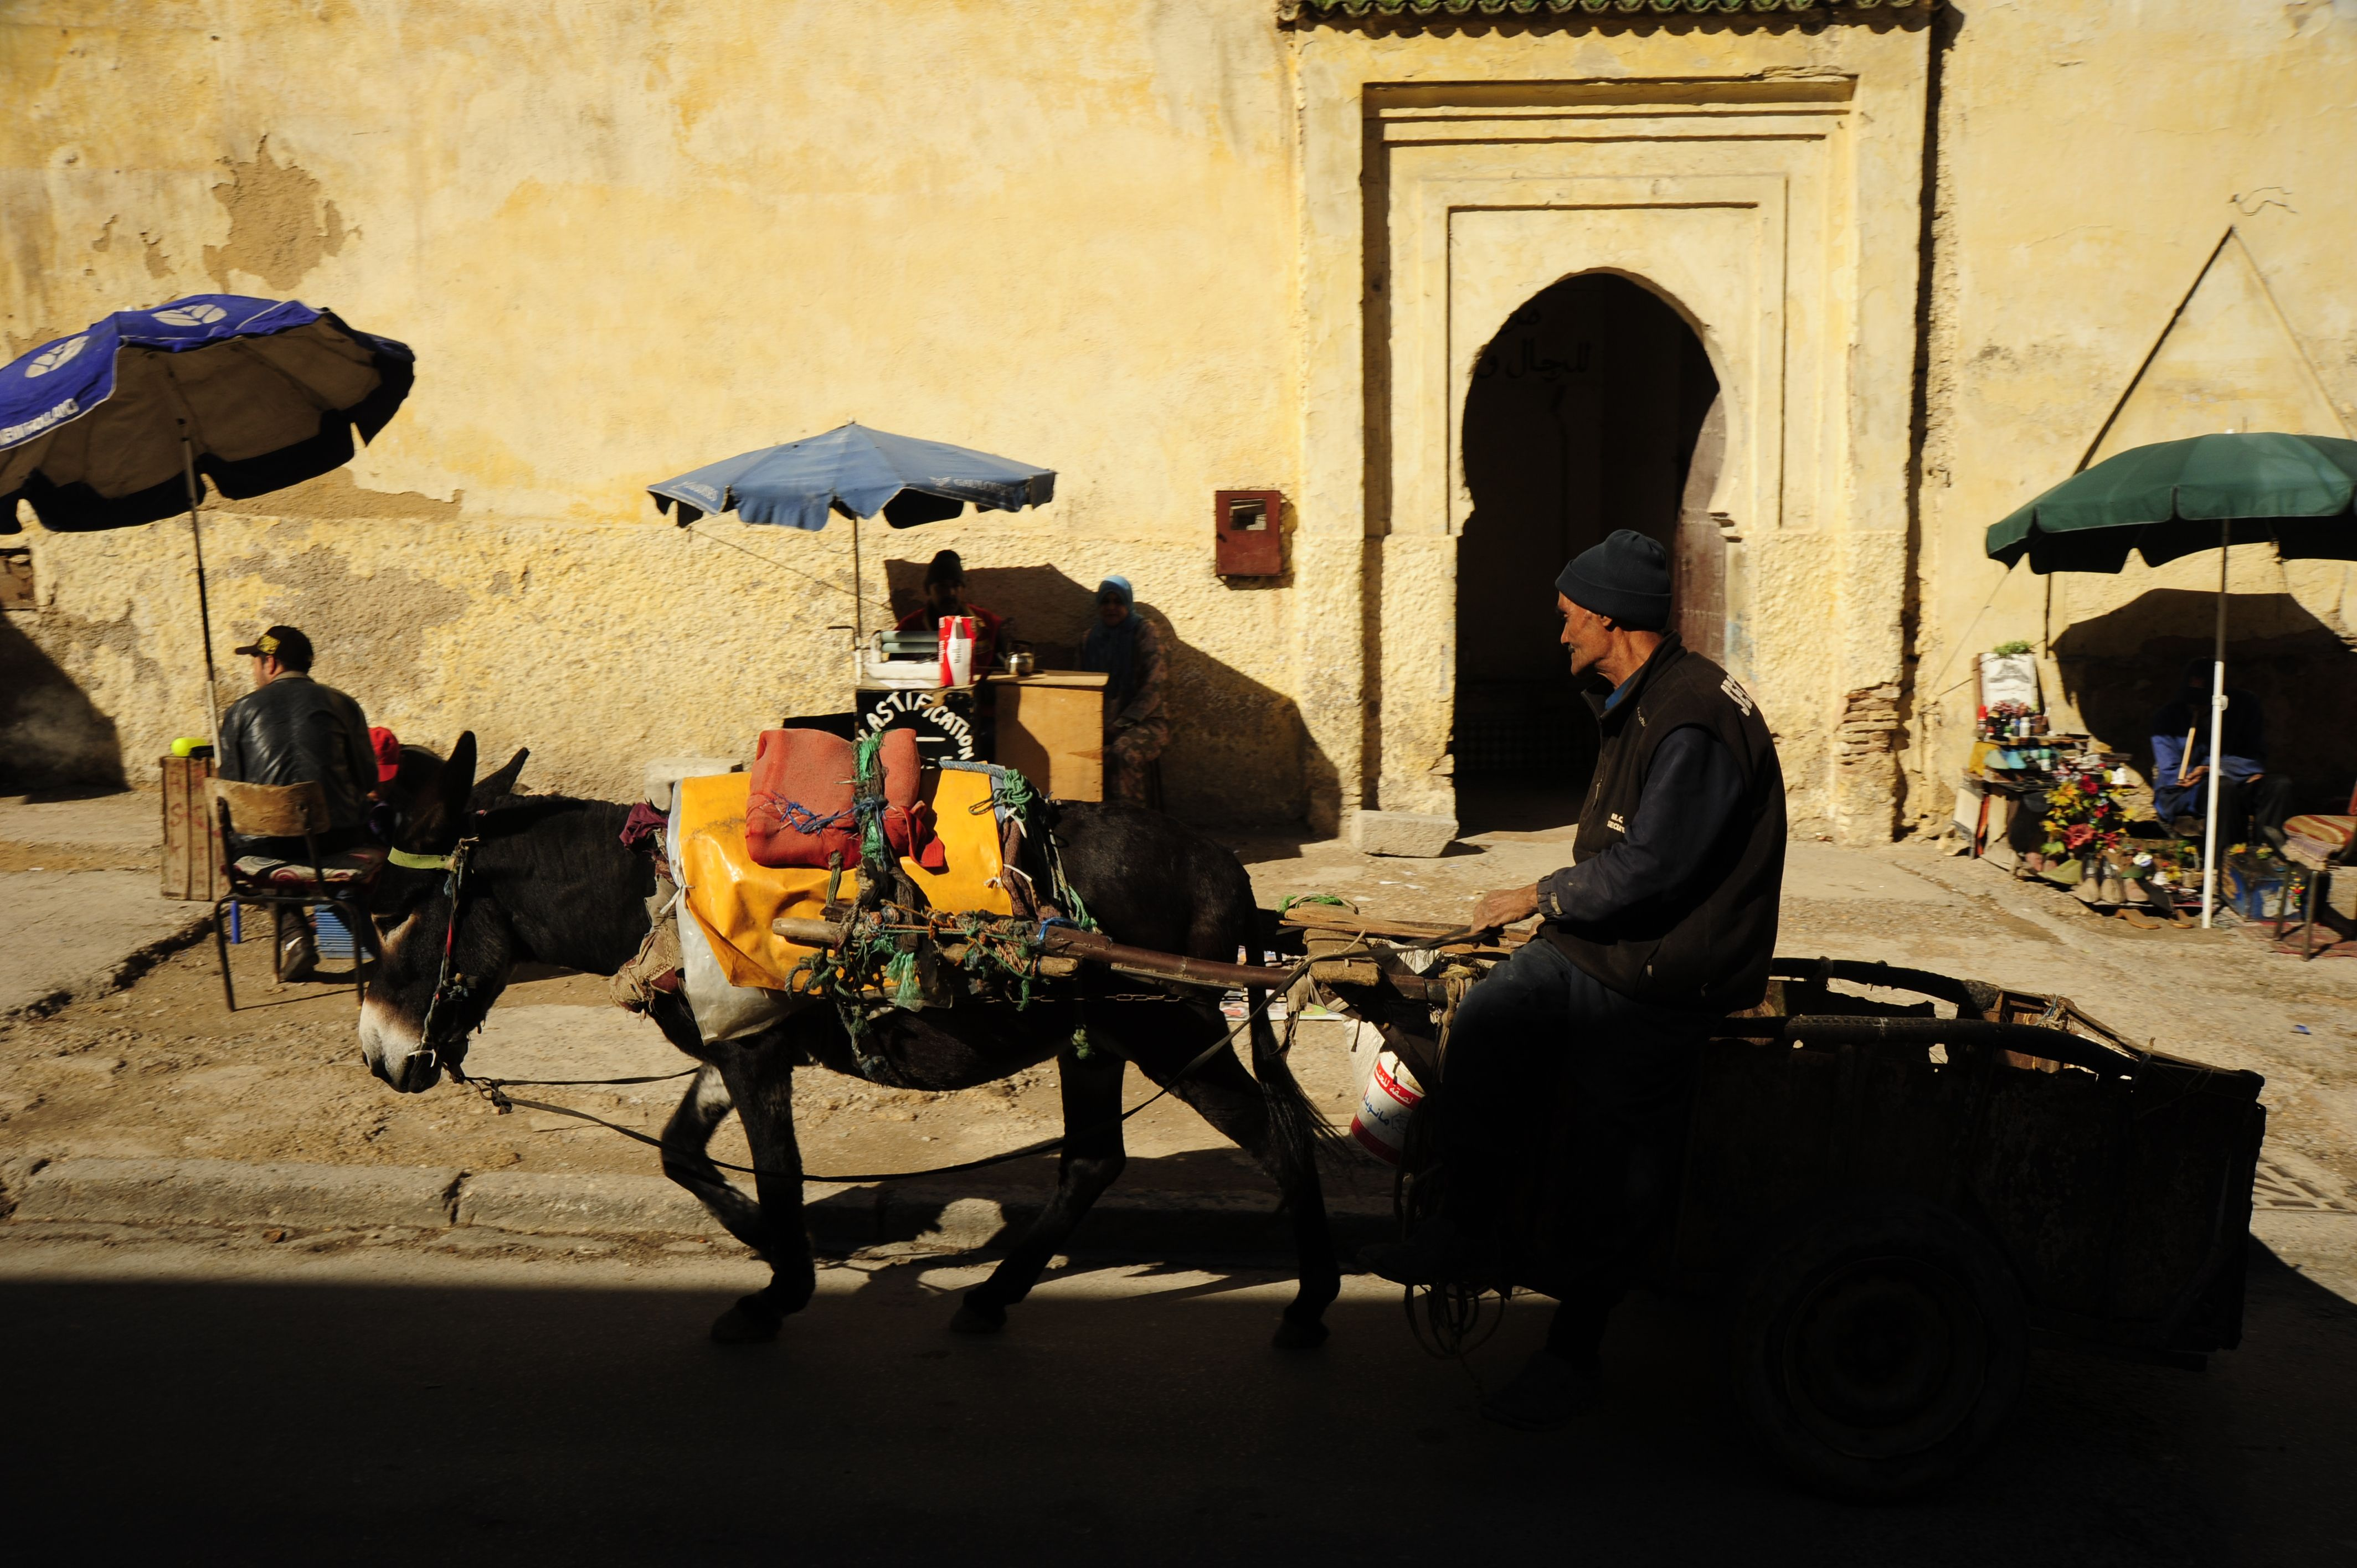 """Heading into the Fez medina; the largest auto-free area in the world. When you hear """"Belek, Belek!"""", there's a donkey trying to get by you. Photo courtesy of Jim See, AIA and Edith Cherry, FAIA."""